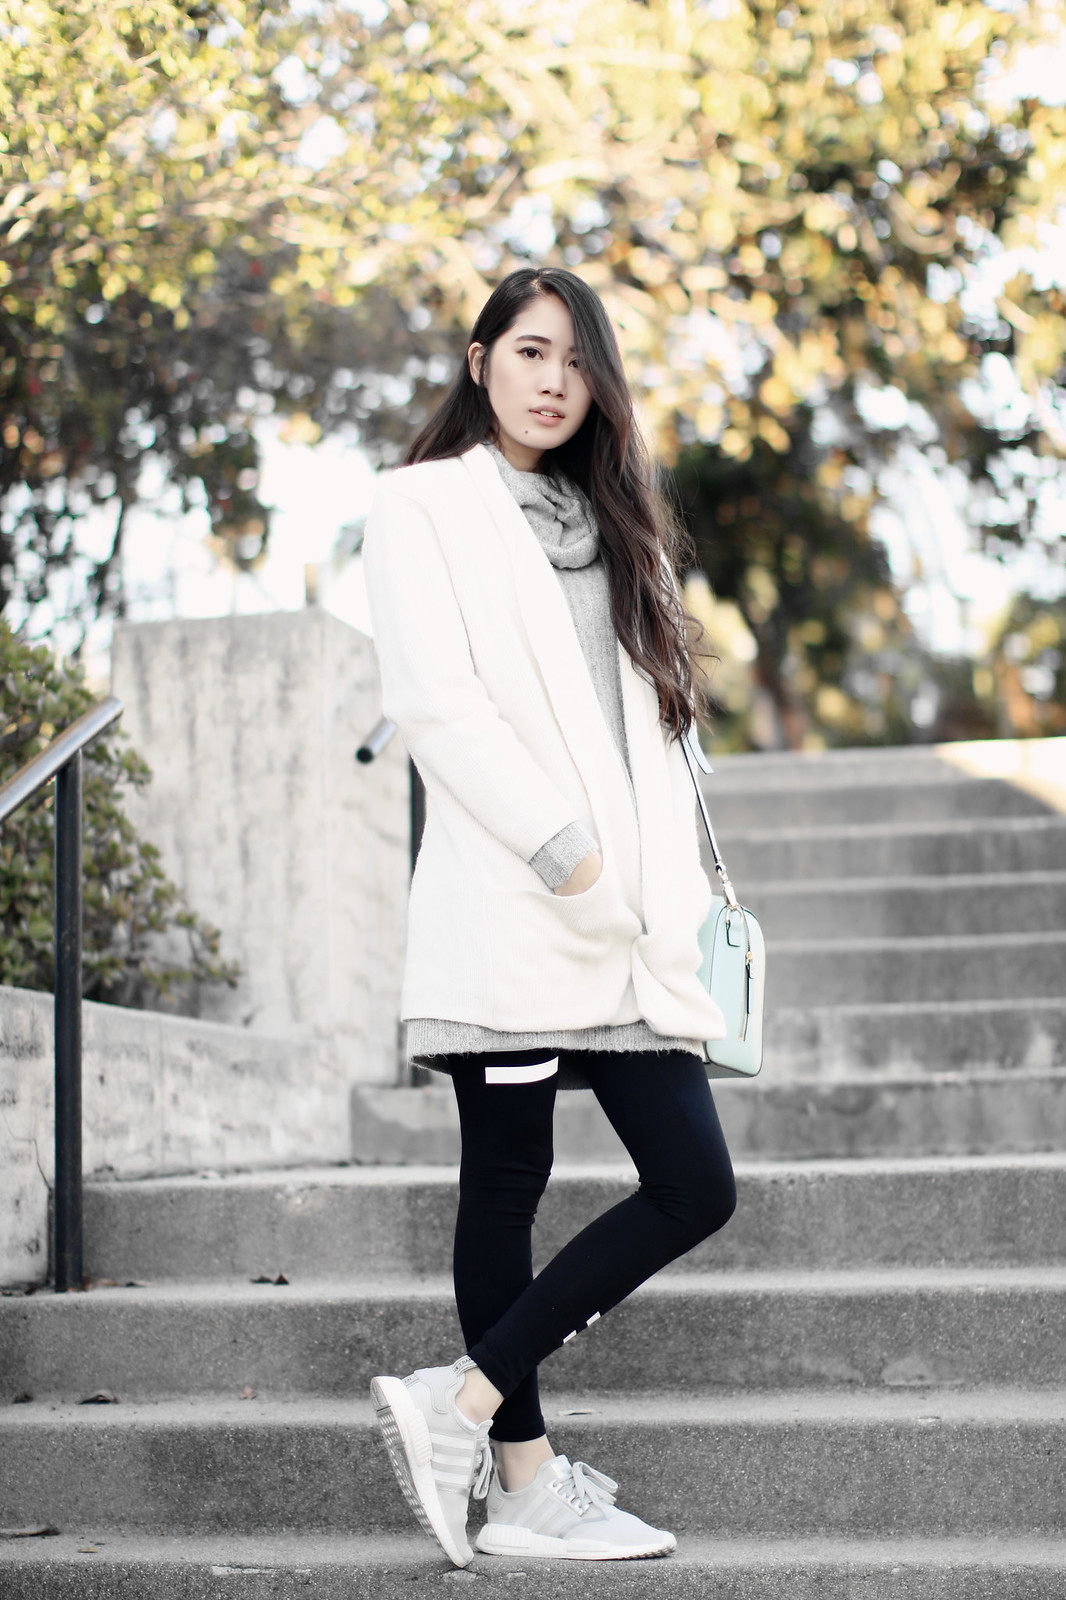 1534-ootd-fashion-style-tobi-cowl-neck-turtleneck-sweater-dress-asianfashion-koreanfashion-winterfashion-clothestoyouuu-elizabeeetht